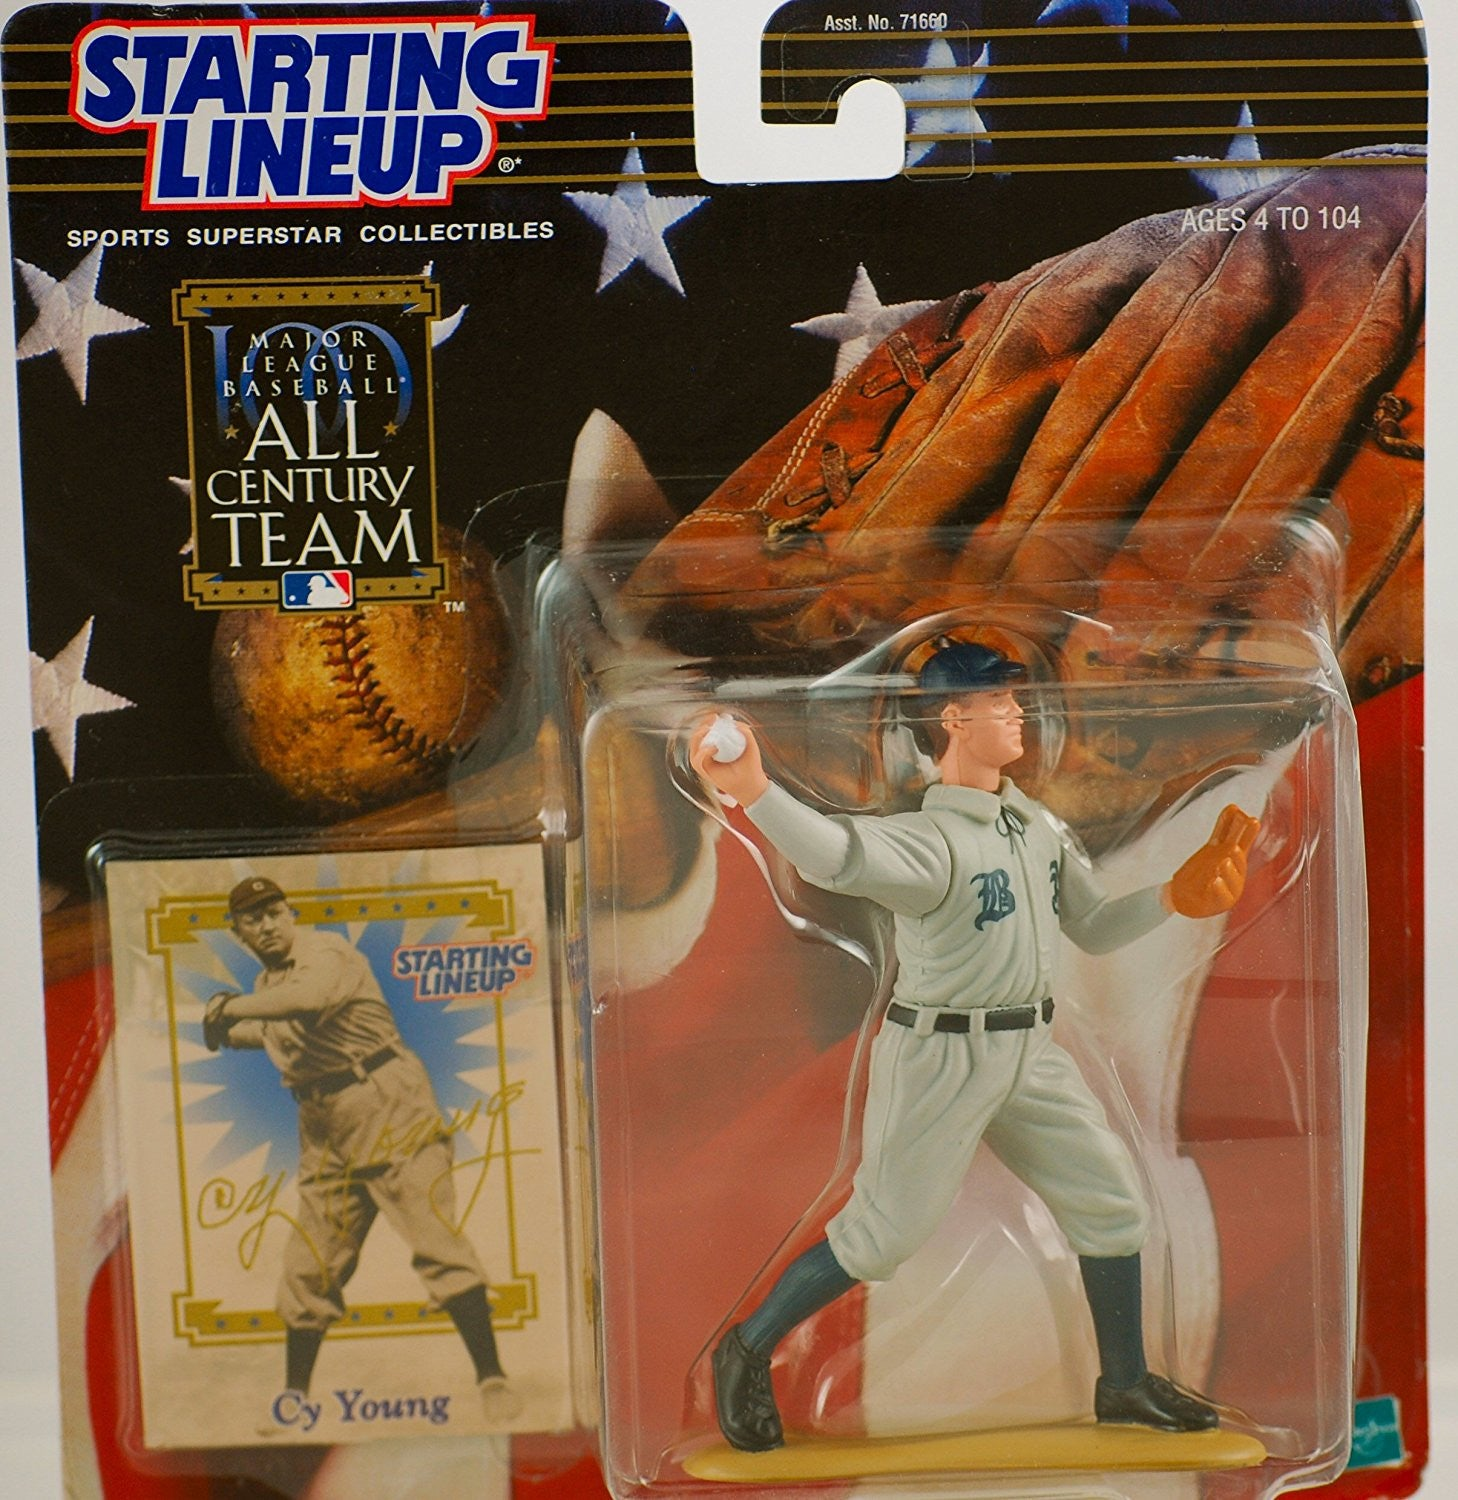 CY YOUNG / BOSTON AMERICANS 2000 MLB All Century Team Starting Lineup Action Figure & Exclusive Collector Trading Card